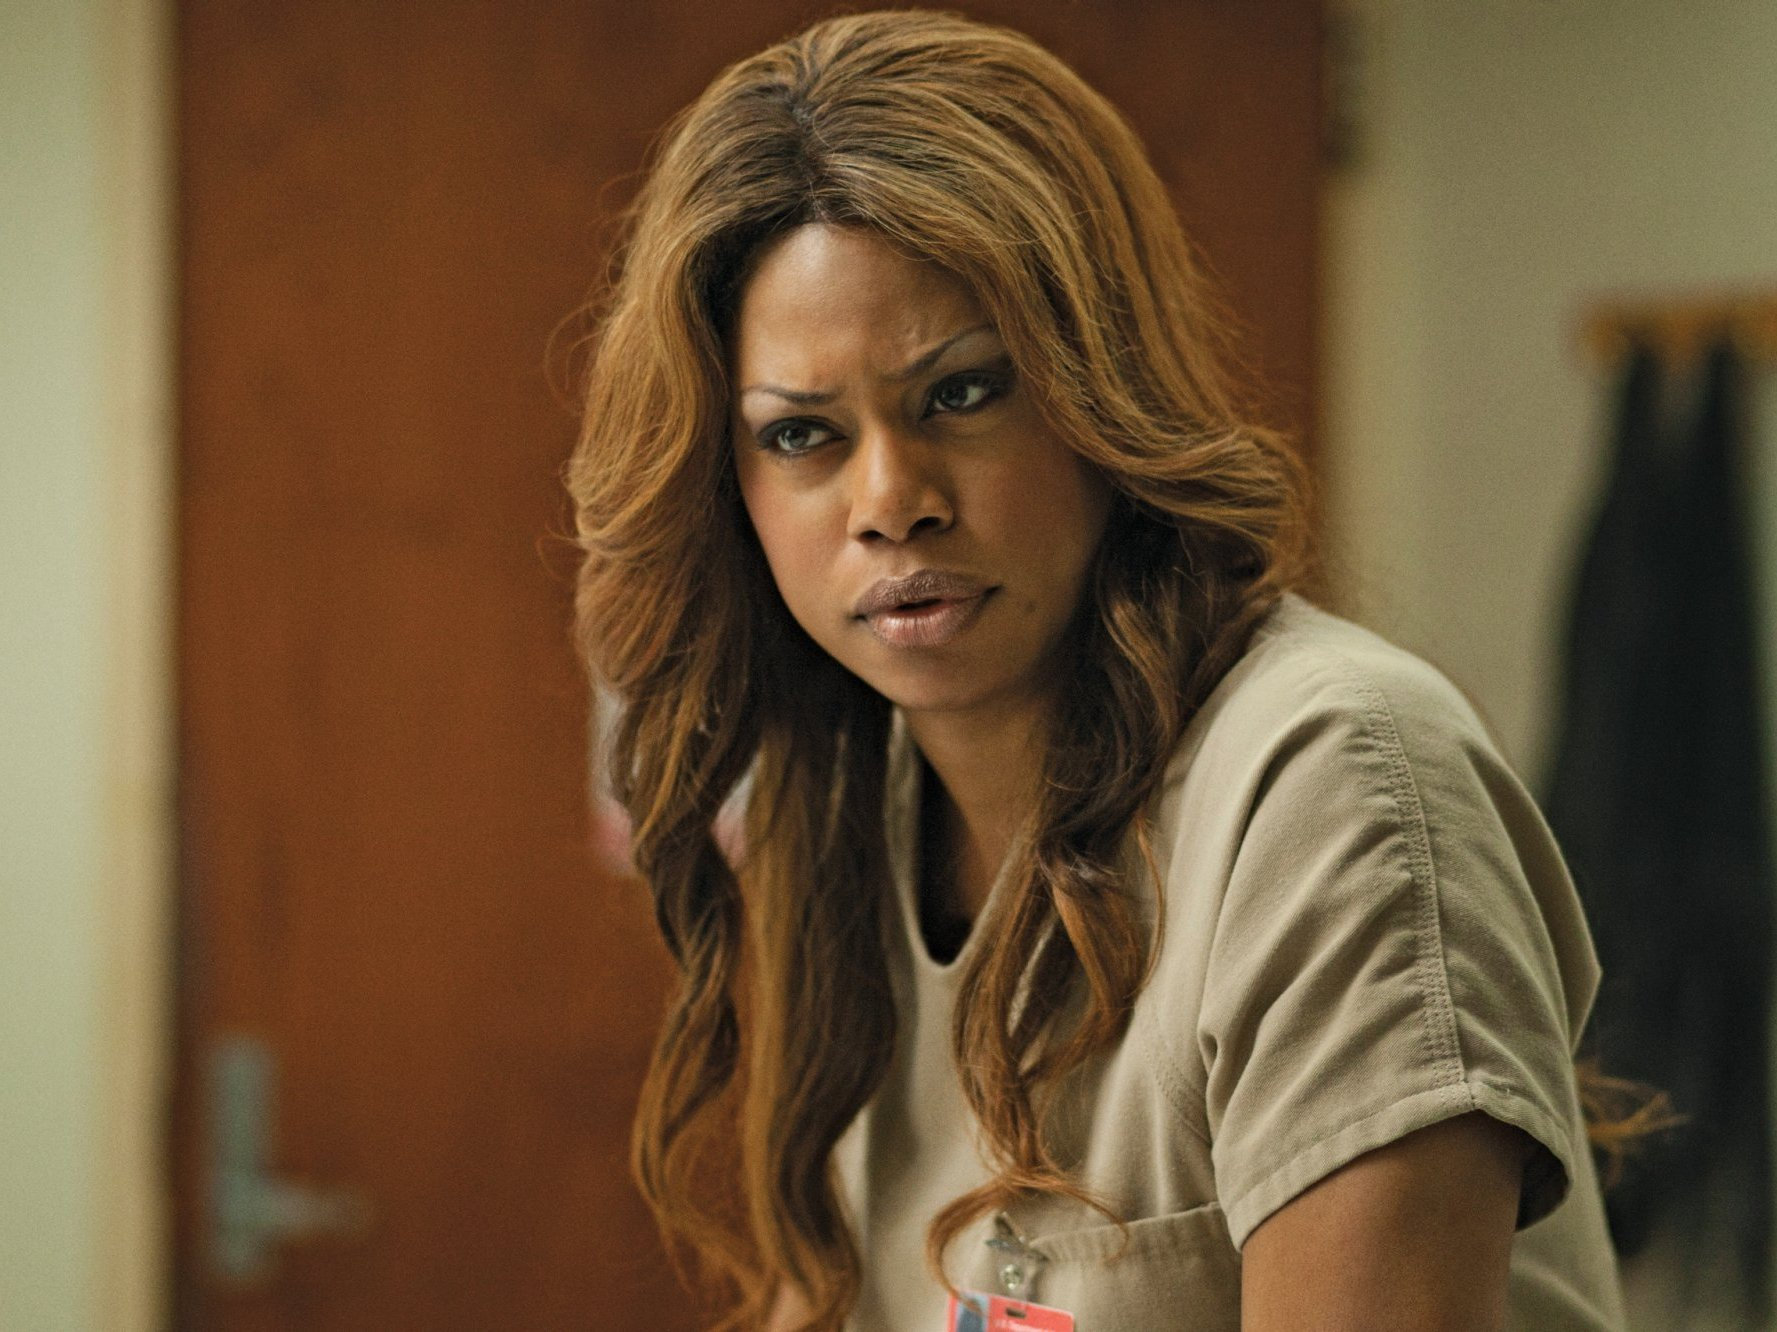 Laverne Cox Transgender Actress On The Challenges Of Her New Black